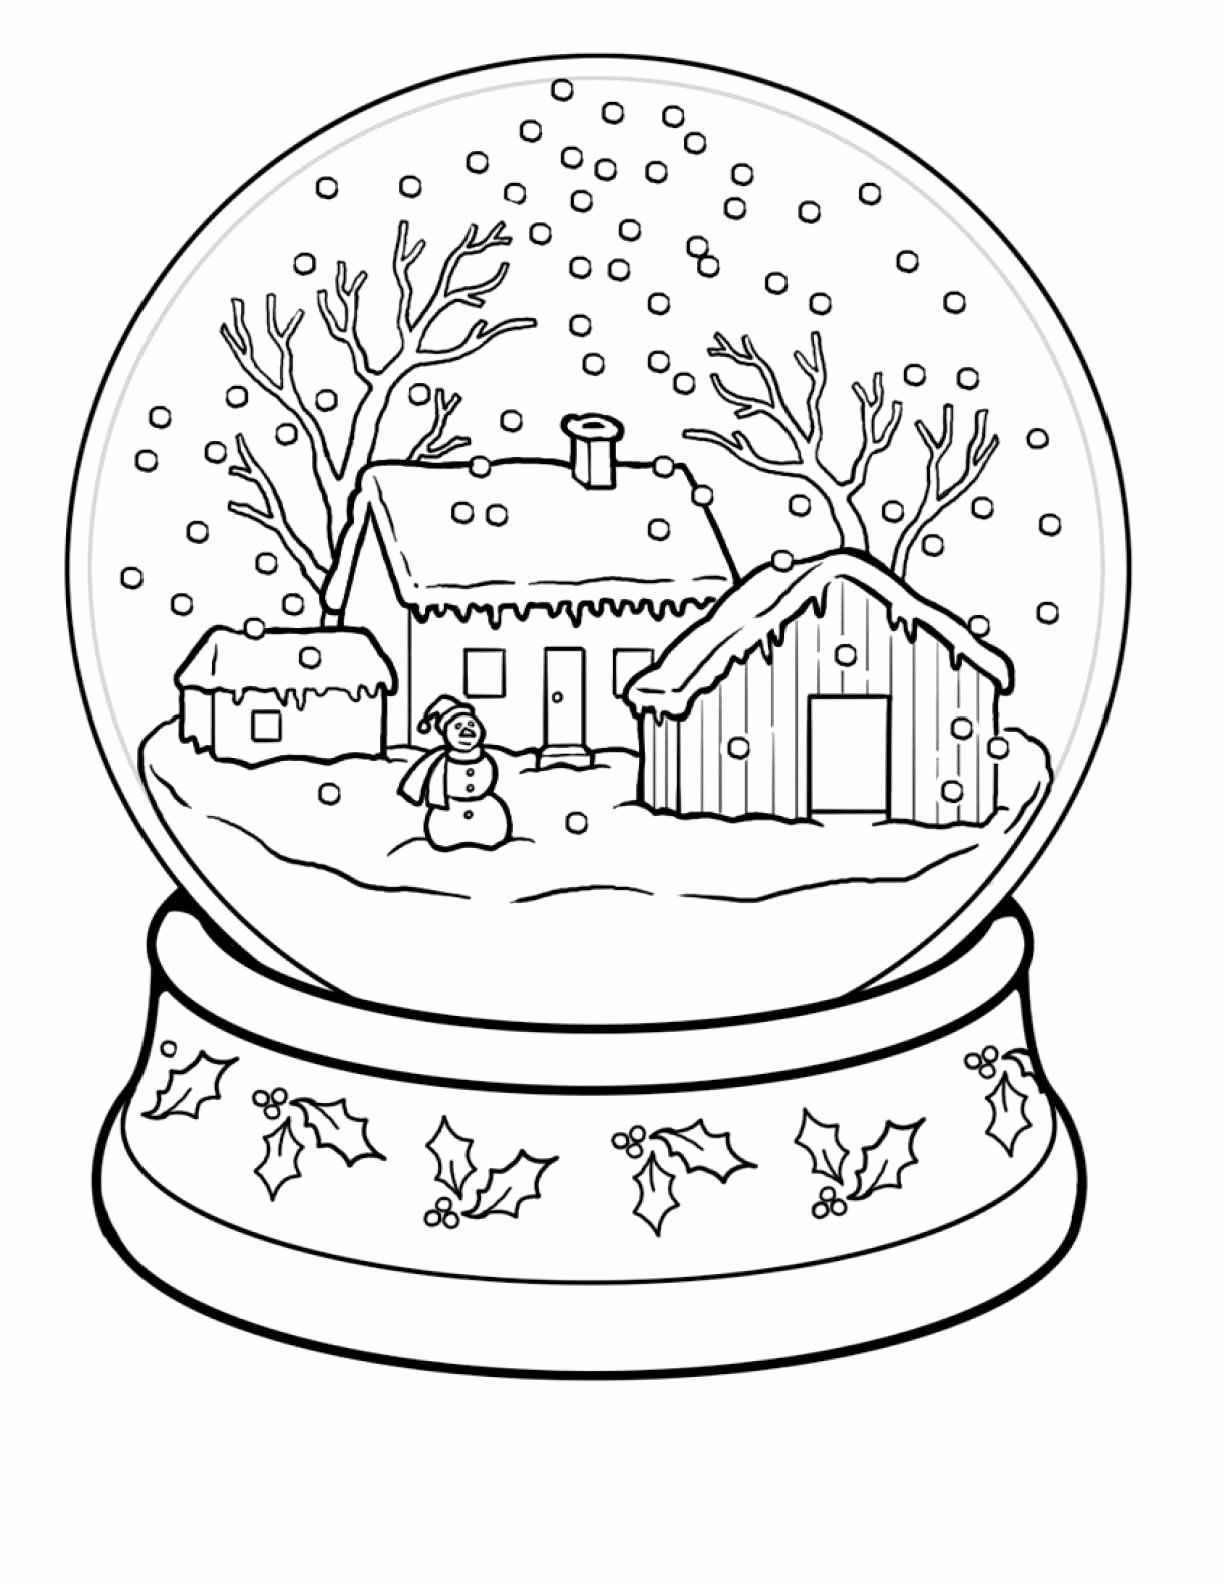 Printable Coloring Pages Nature Scenes Best Of Of Winter Scene Coloring Page Sabadaphnecottage Coloring Pages Winter Holiday Worksheets Coloring Book Pages